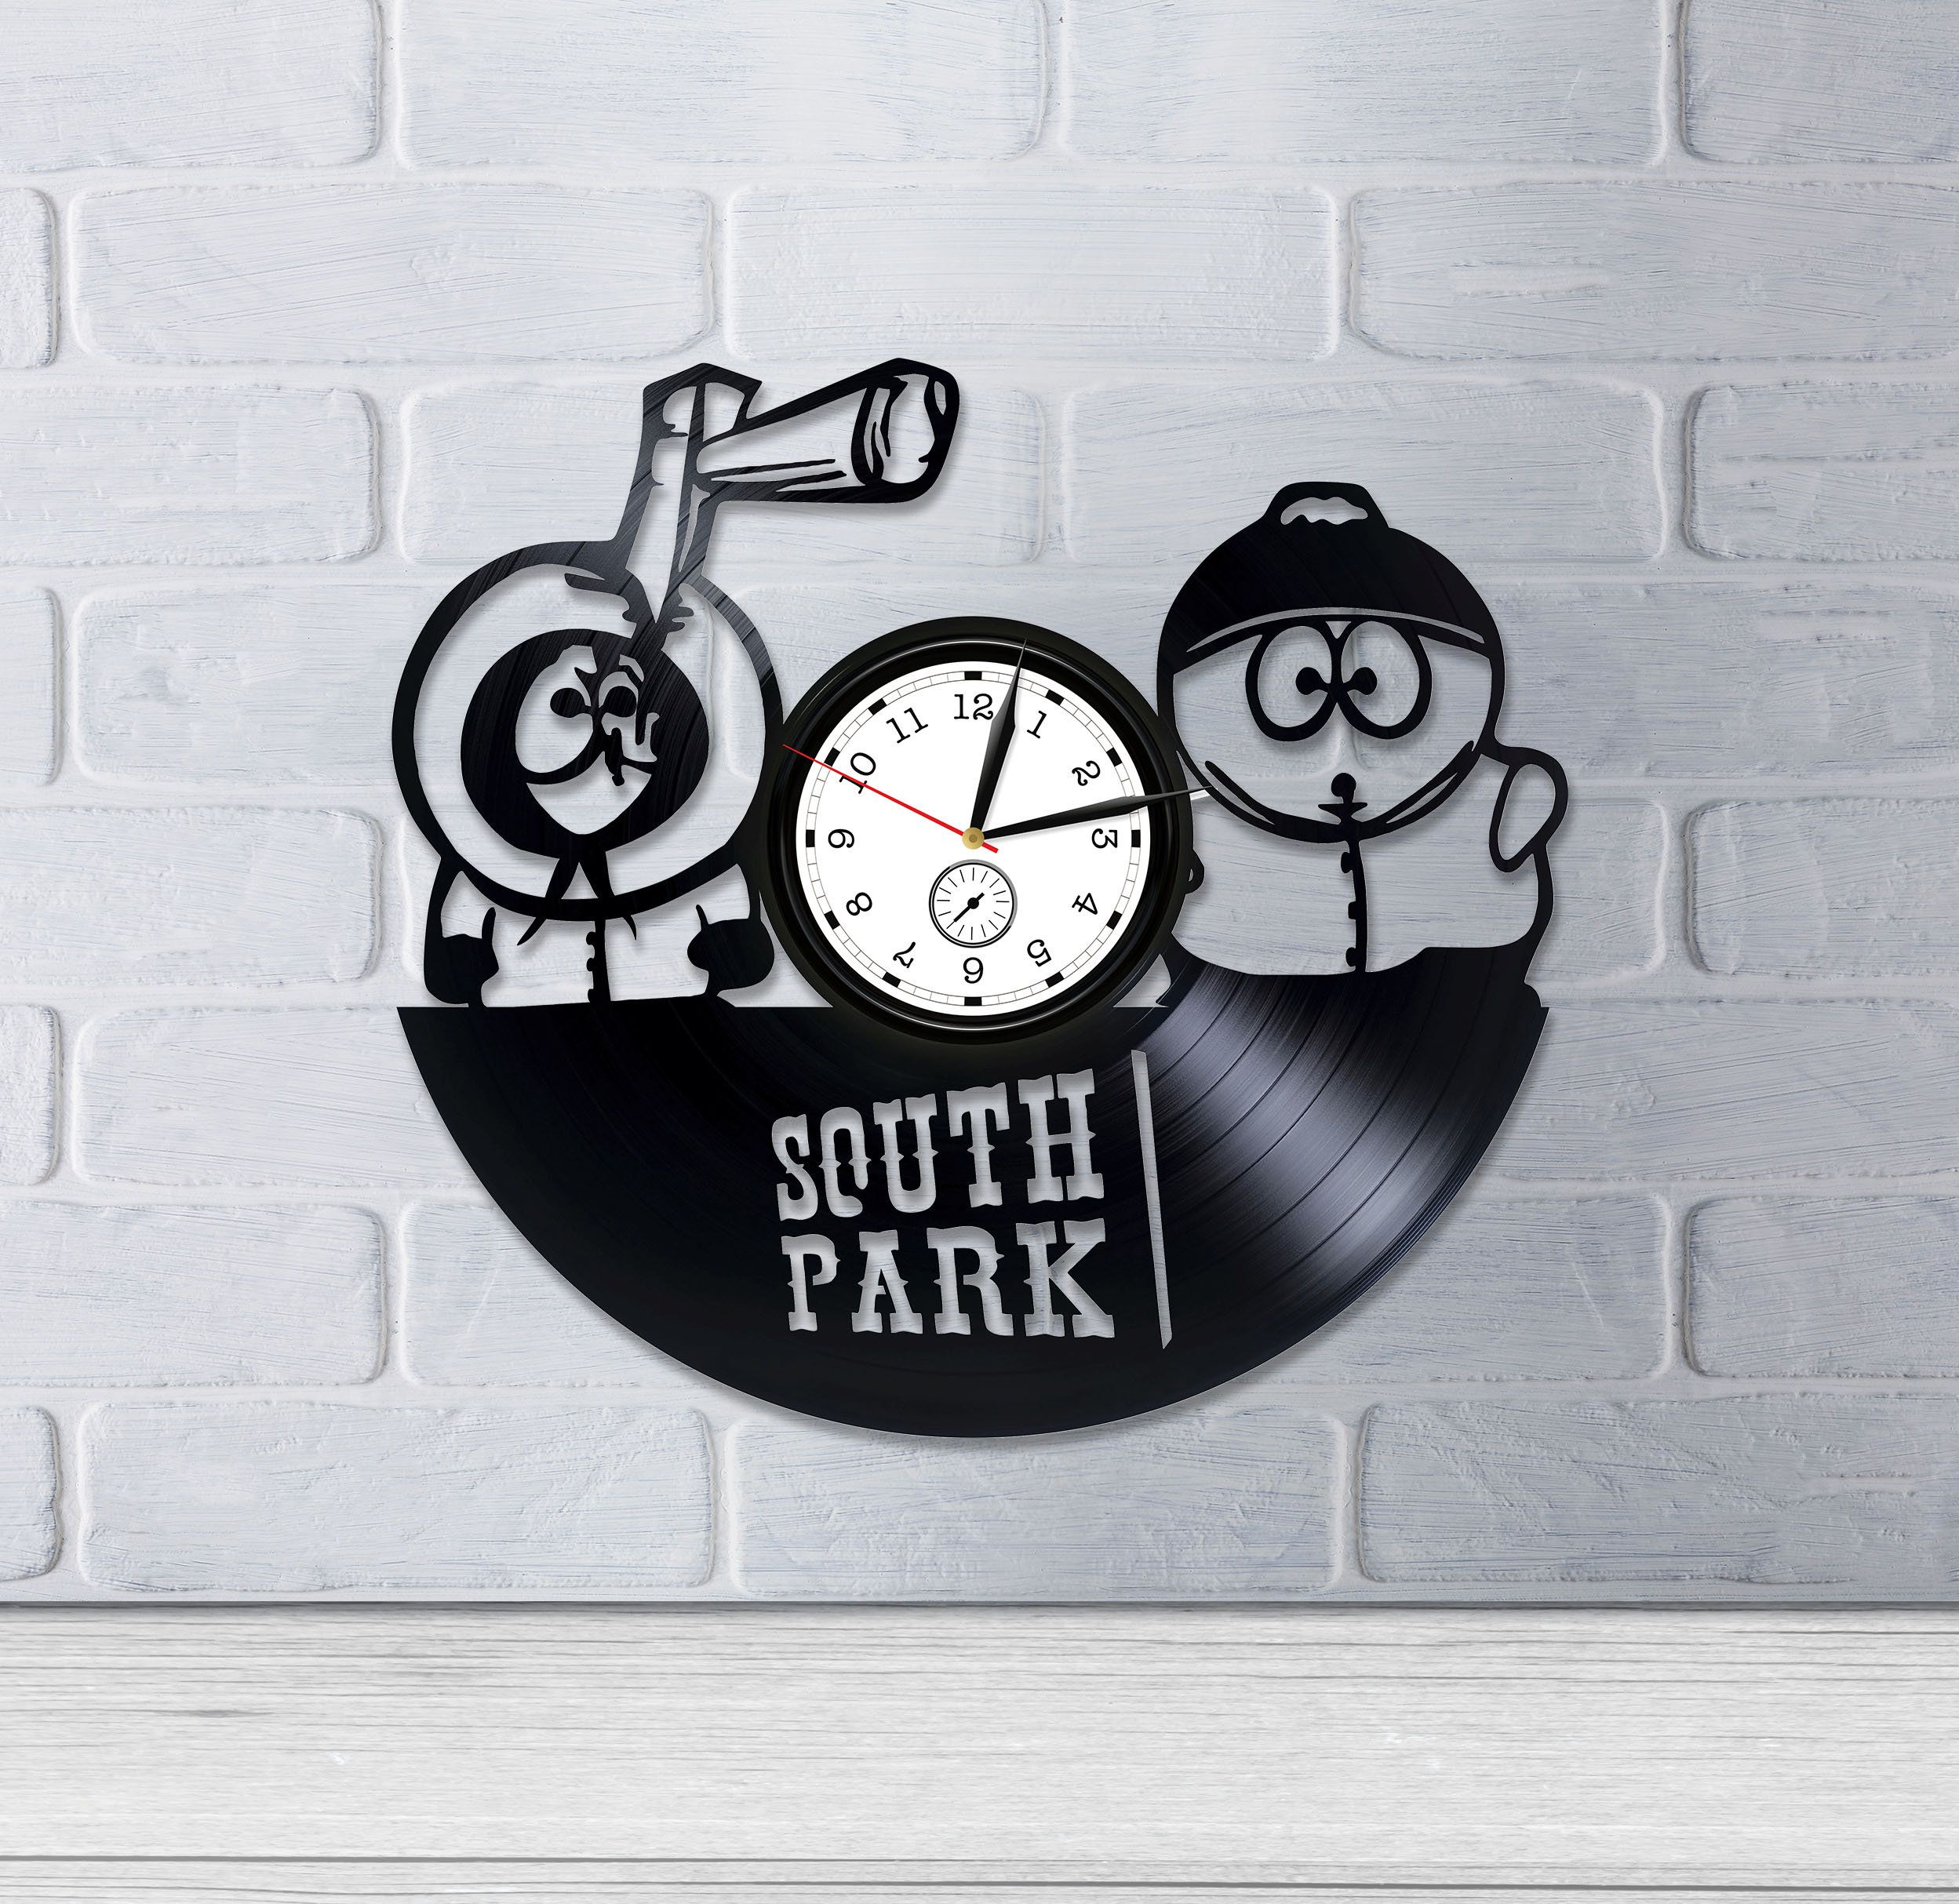 South Park Clock Children Room Art Cartoon Gift Birthday Gift For Fan South Park Wall Art Retro Vinyl R Kids Room Art Vintage Wall Clock How To Make Wall Clock